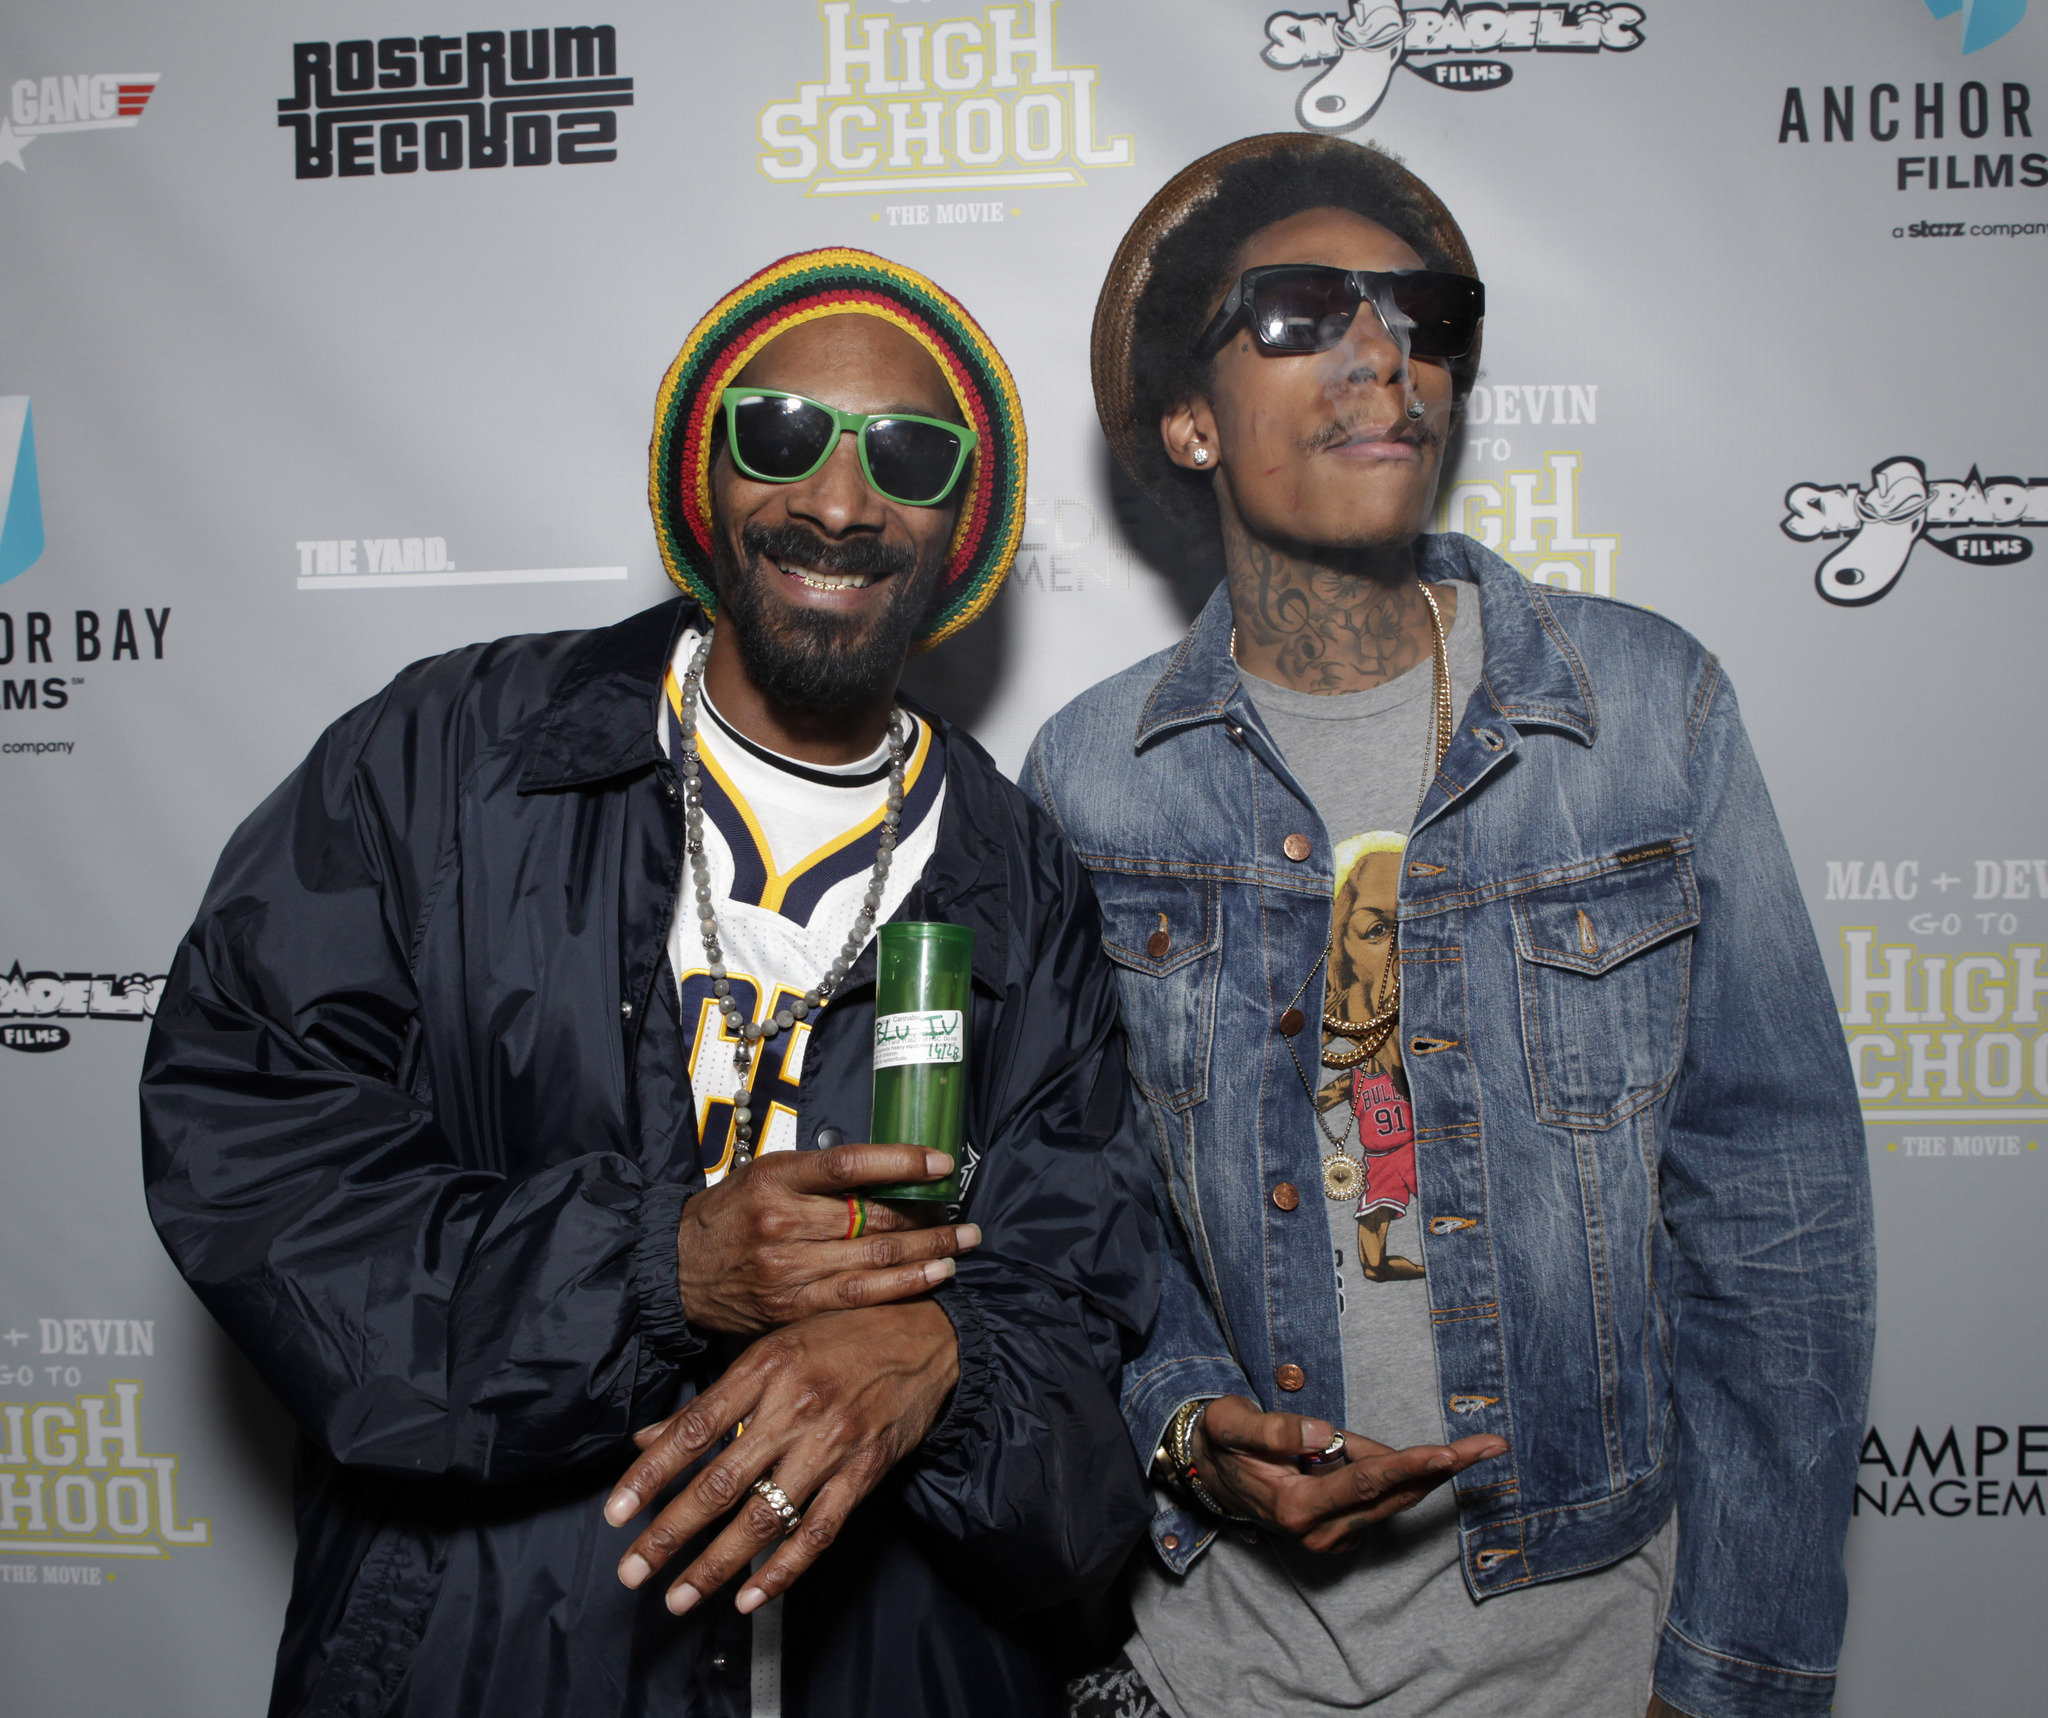 Rappers snoop dogg wiz khalifa to perform at lakeview rappers snoop dogg wiz khalifa to perform at lakeview amphitheater in syracuse syracuse kristyandbryce Gallery